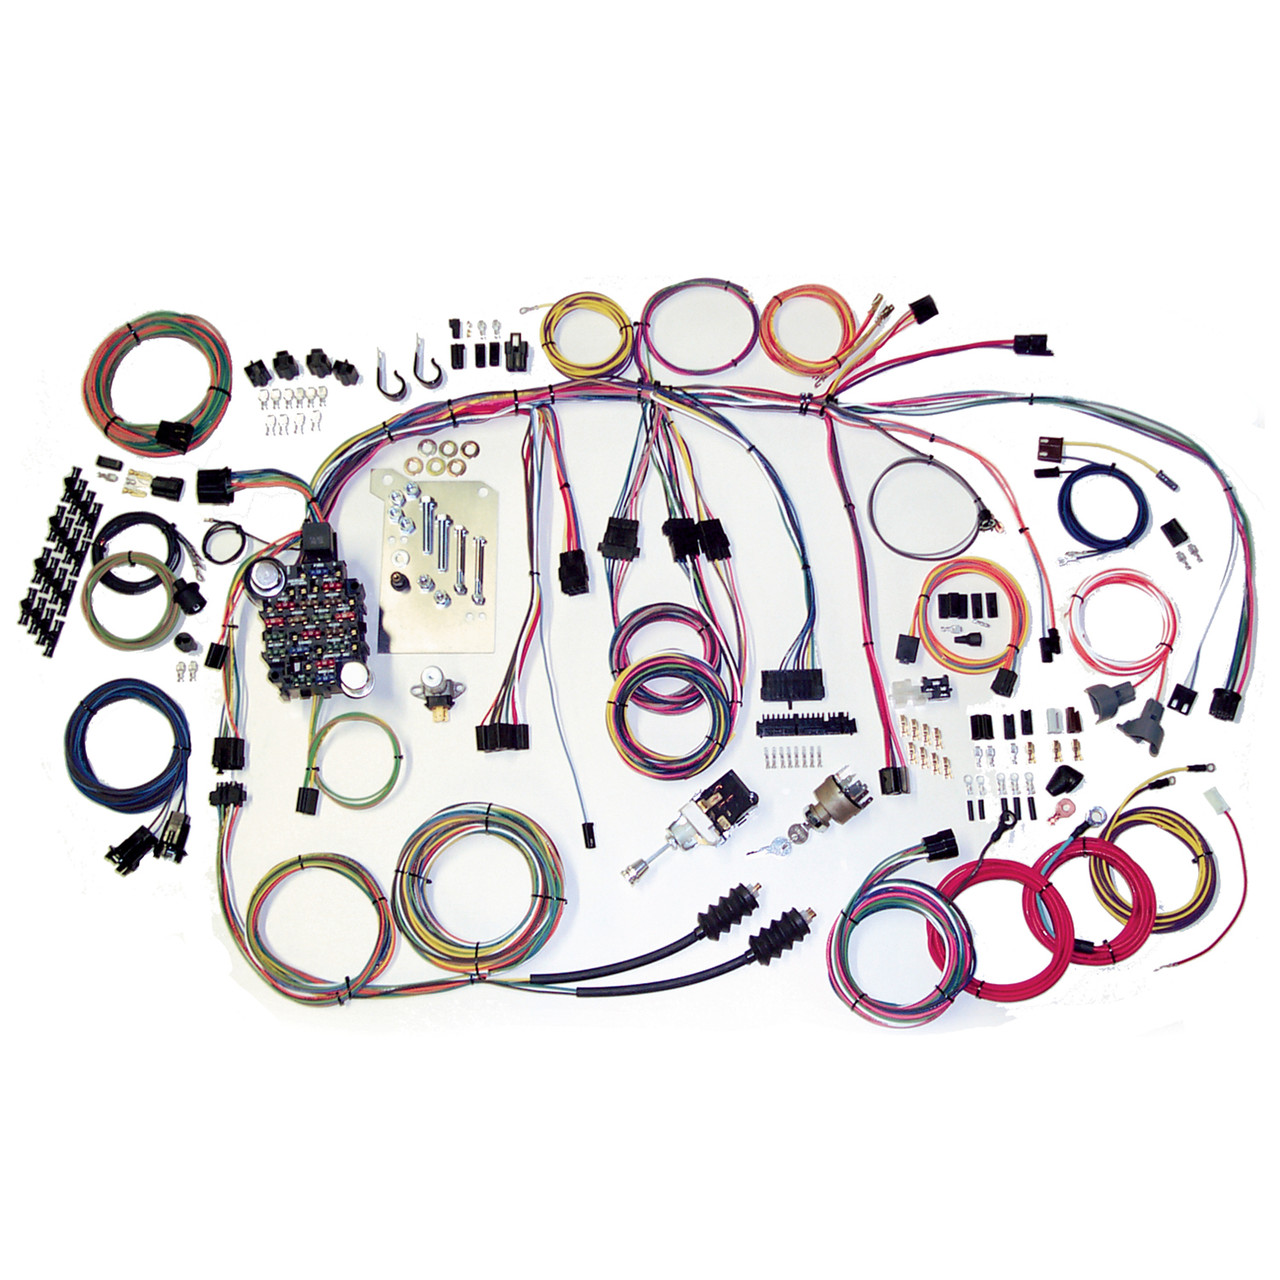 american autowire 1960 1966 chevrolet truck classic update 1960 chevy c10 wiring harness 1960 chevy c10 wiring harness [ 1280 x 1280 Pixel ]